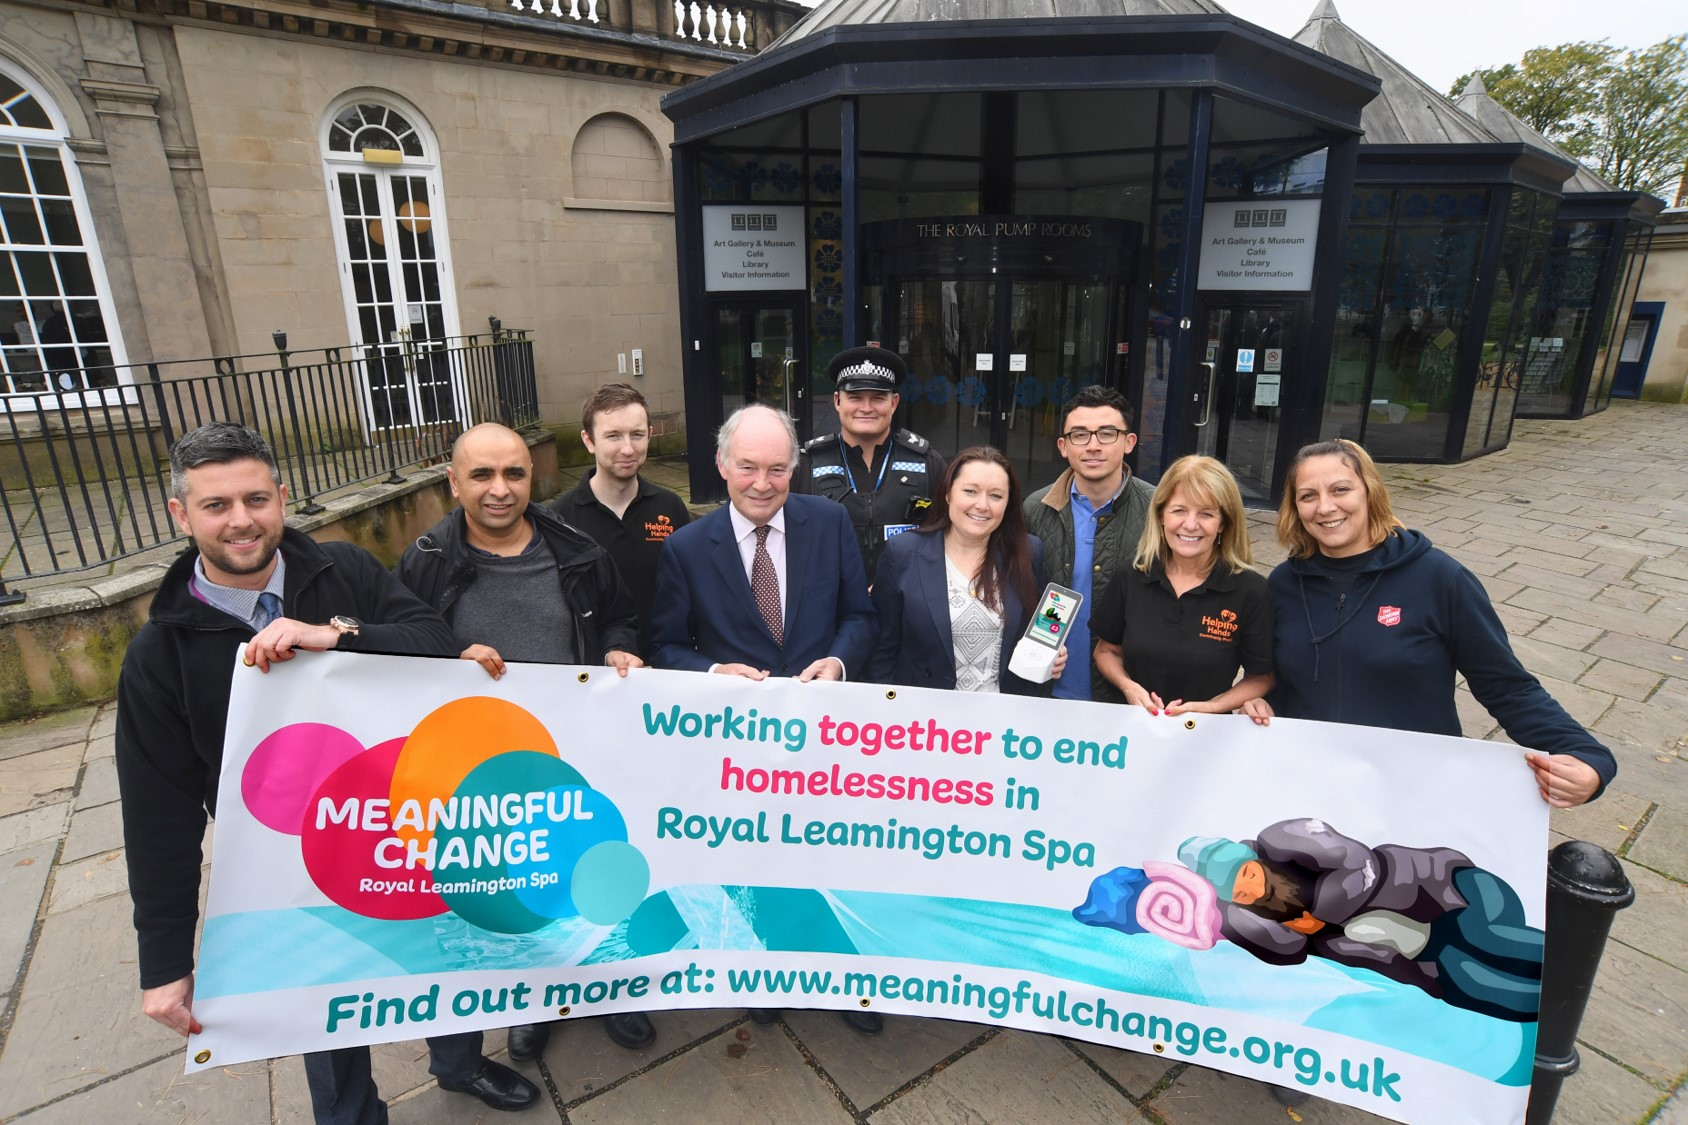 Pictured at the launch of Meaningful Change Leamington outside the Visitor Information Centre are, from left to right, Jon Barnett (Warwick District Council), Ayyaz Ahmed (Warwick District Council), Chris Higgins (Helping Hands), Philip Seccombe (Warwickshire Police and Crime Commissioner), Sgt Trent McMurray (Warwickshire Police), Stephanie Kerr (BID Leamington), Aaron Greaves (Heart of England Community Foundation), Sue Verne (Helping Hands), Ljupka Stojanovska (The Salvation Army).